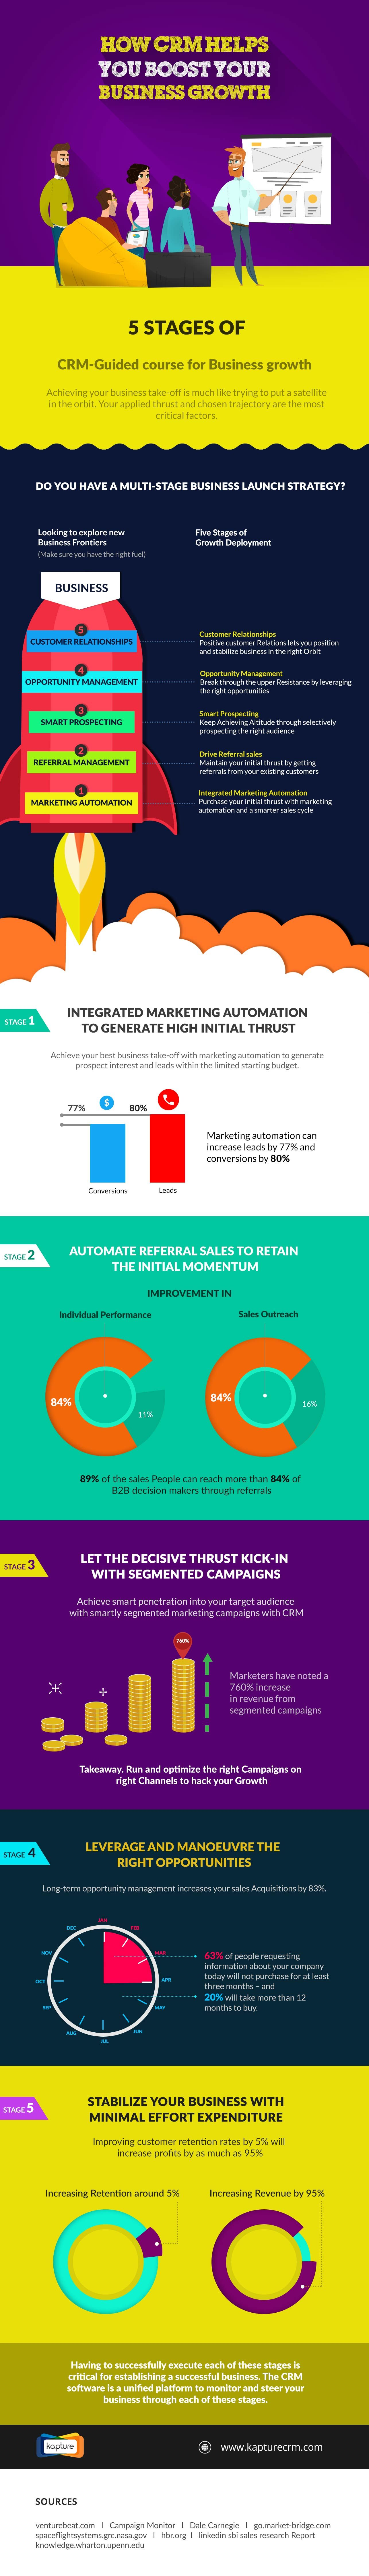 Business Growth CRM to achieve significant automation in